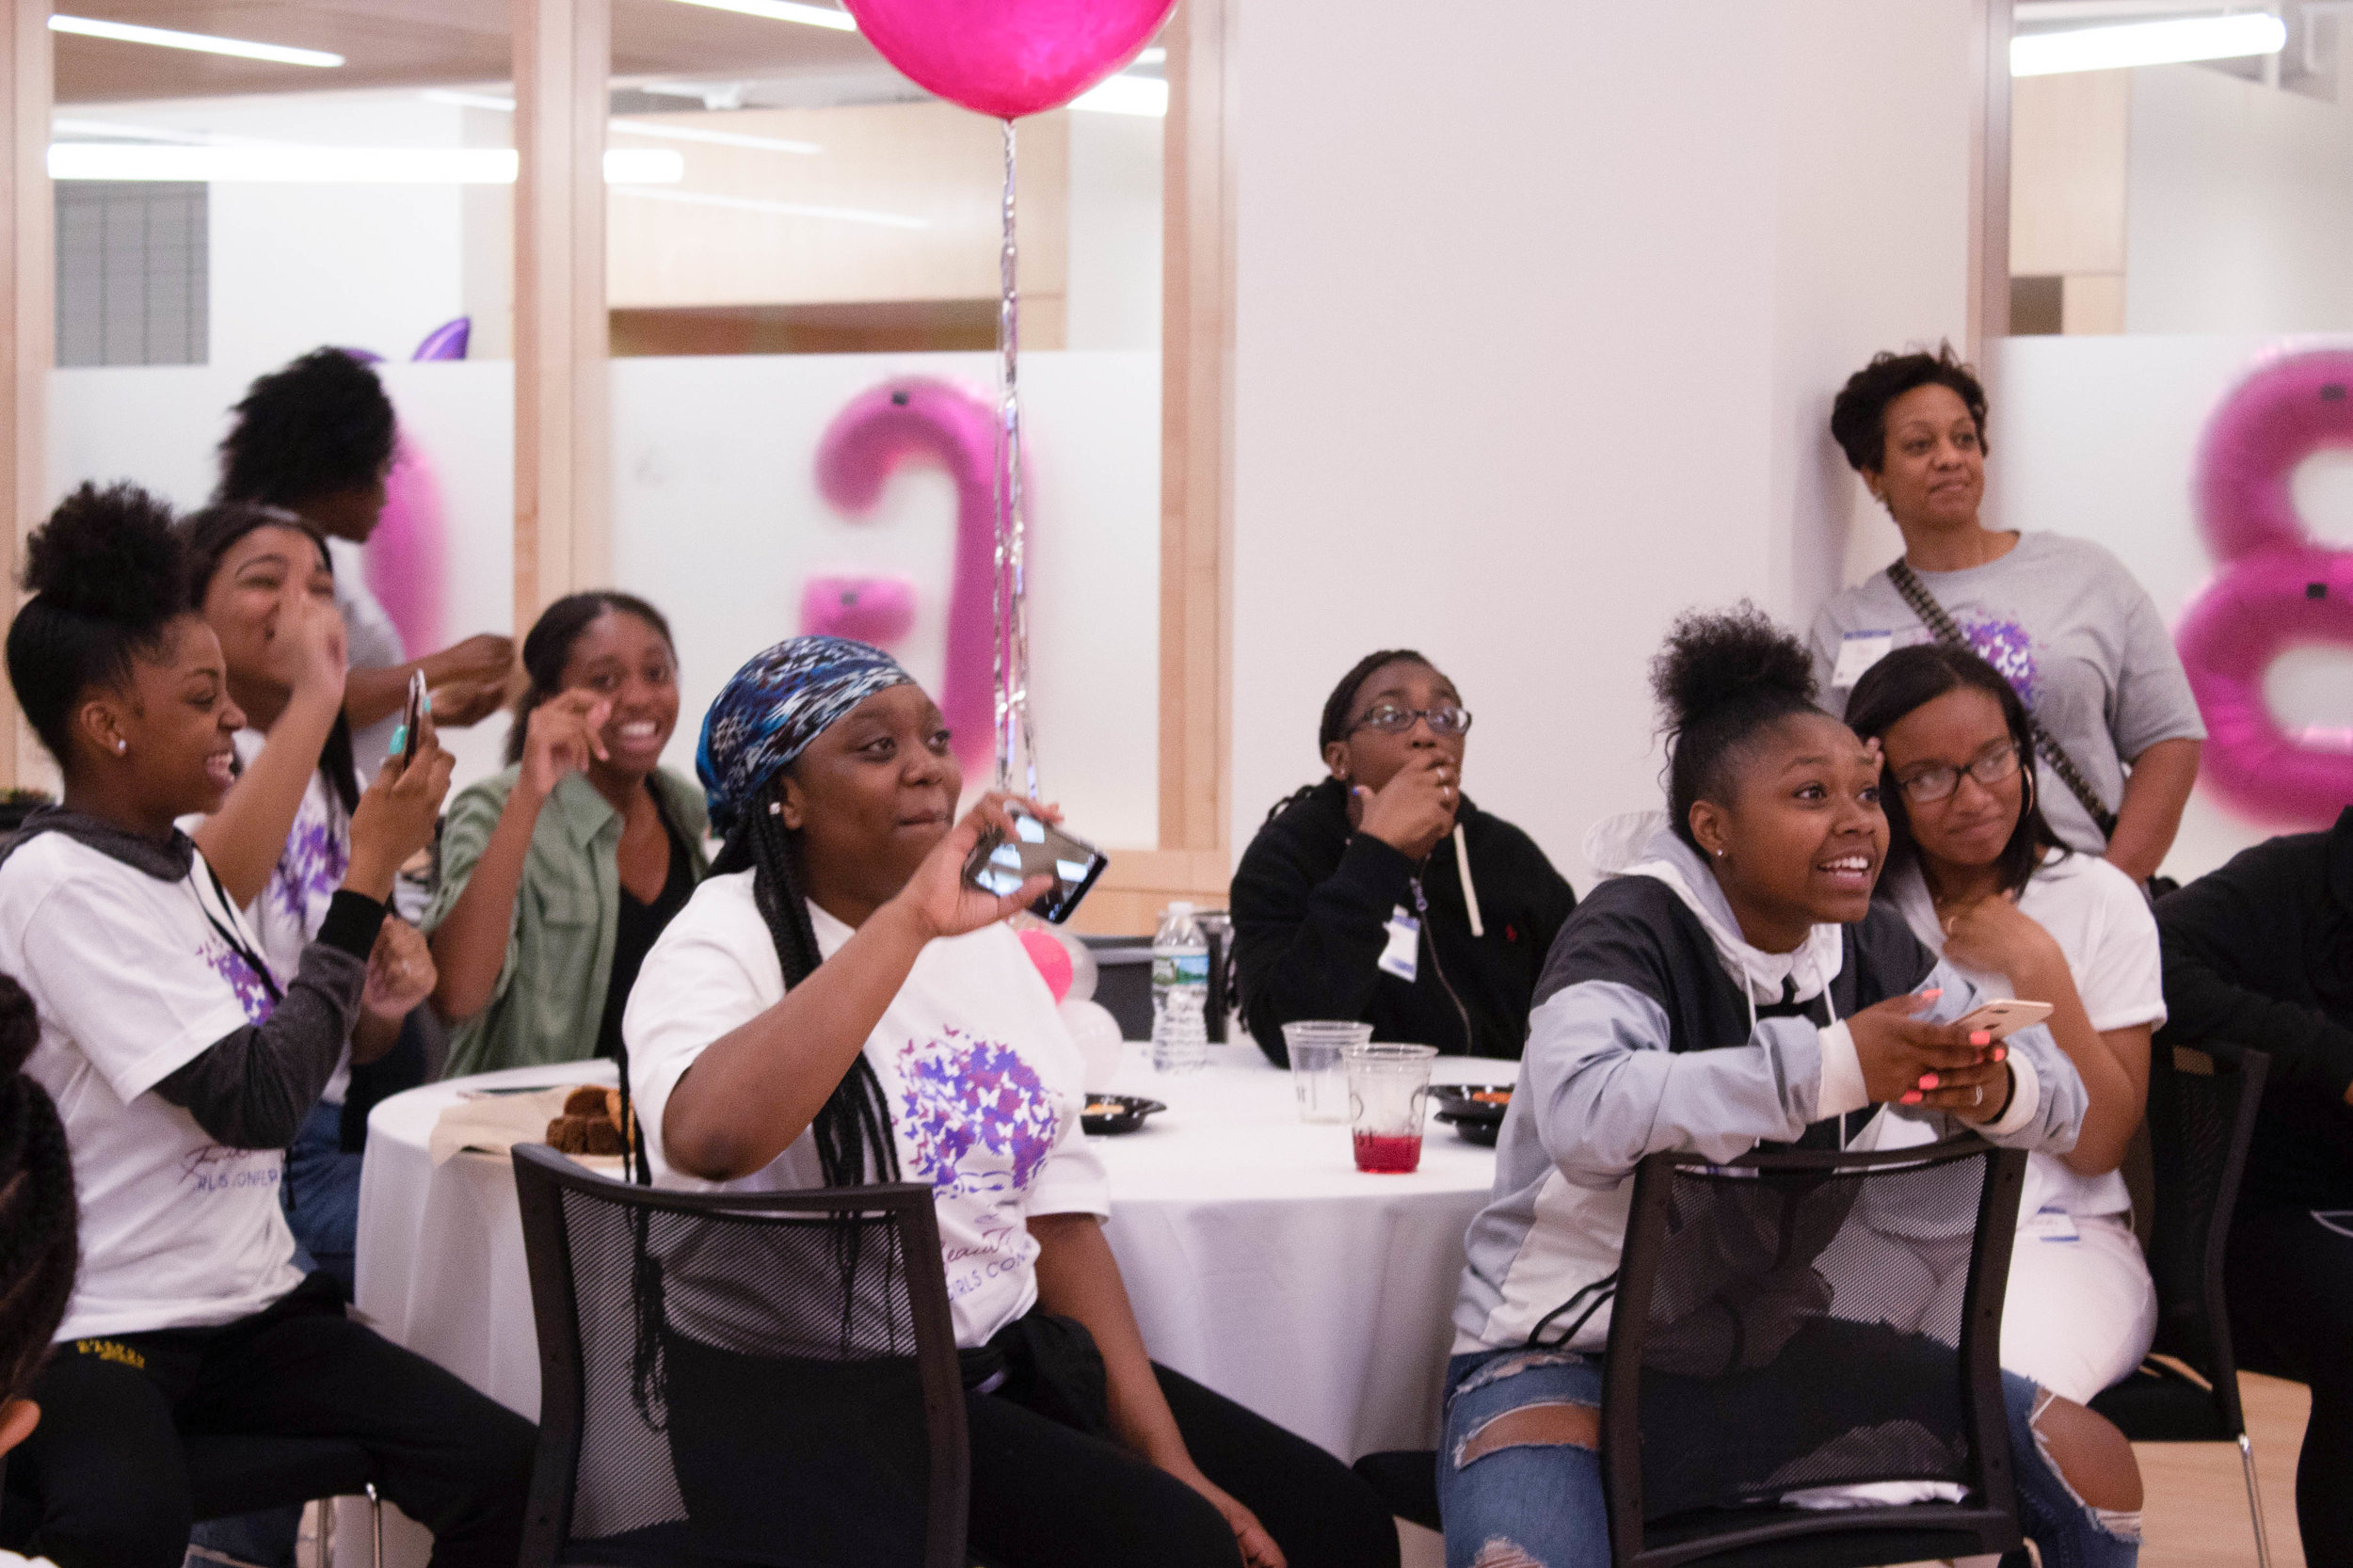 Cheering & looks of amazement as the ladies cheered on their fellow peer, rapper J-Simone.